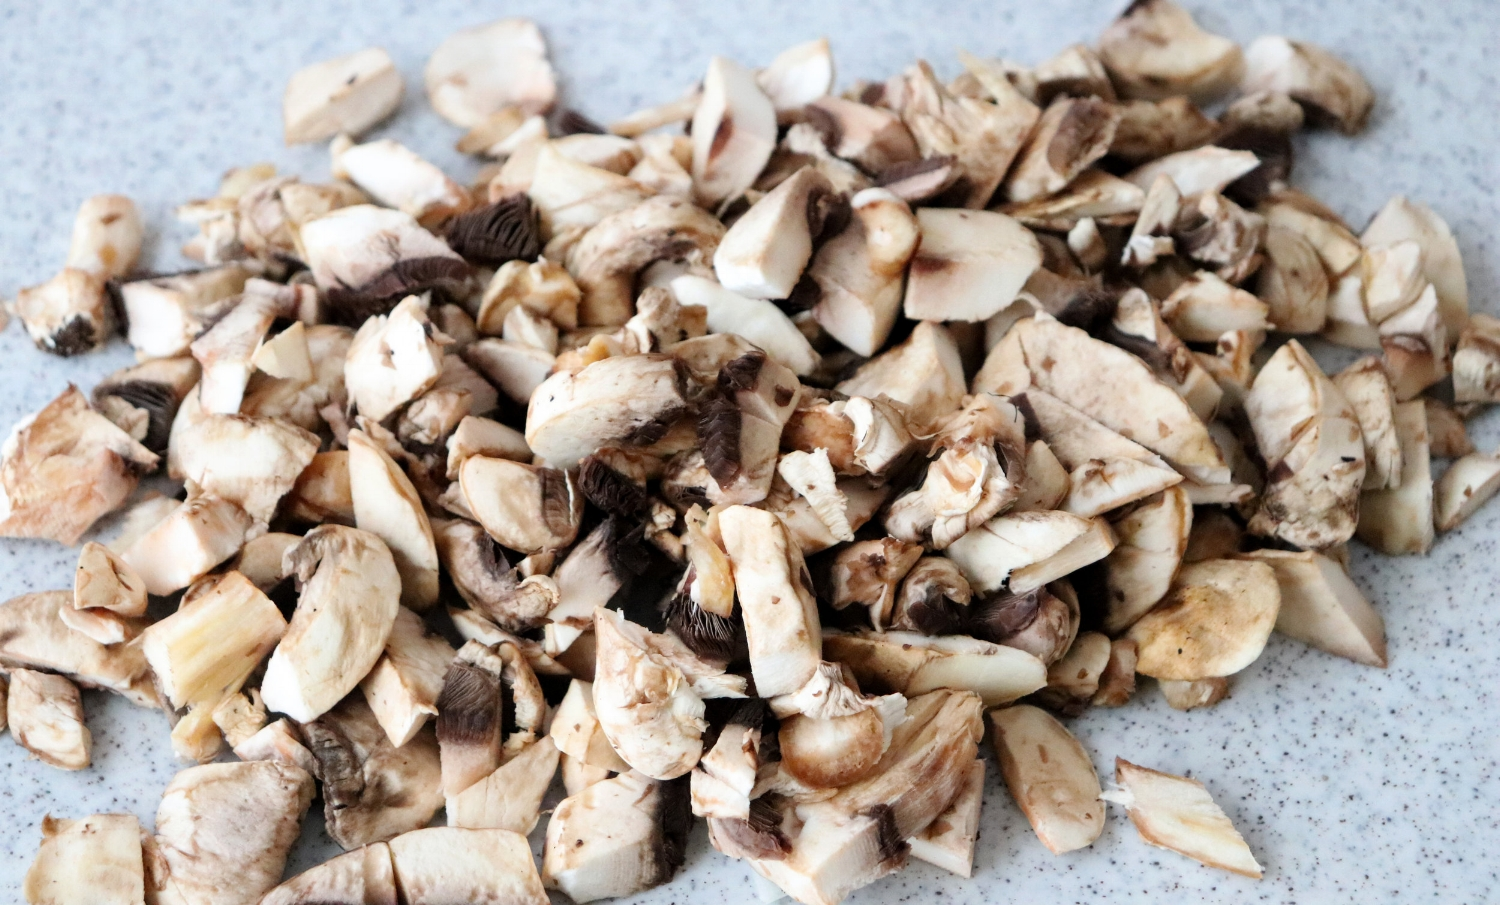 "Mushrooms have an earthy, ""beefy"" flavor. By adding mushrooms you can decrease the amount of red meat - budget friendly and cancer-protective!"